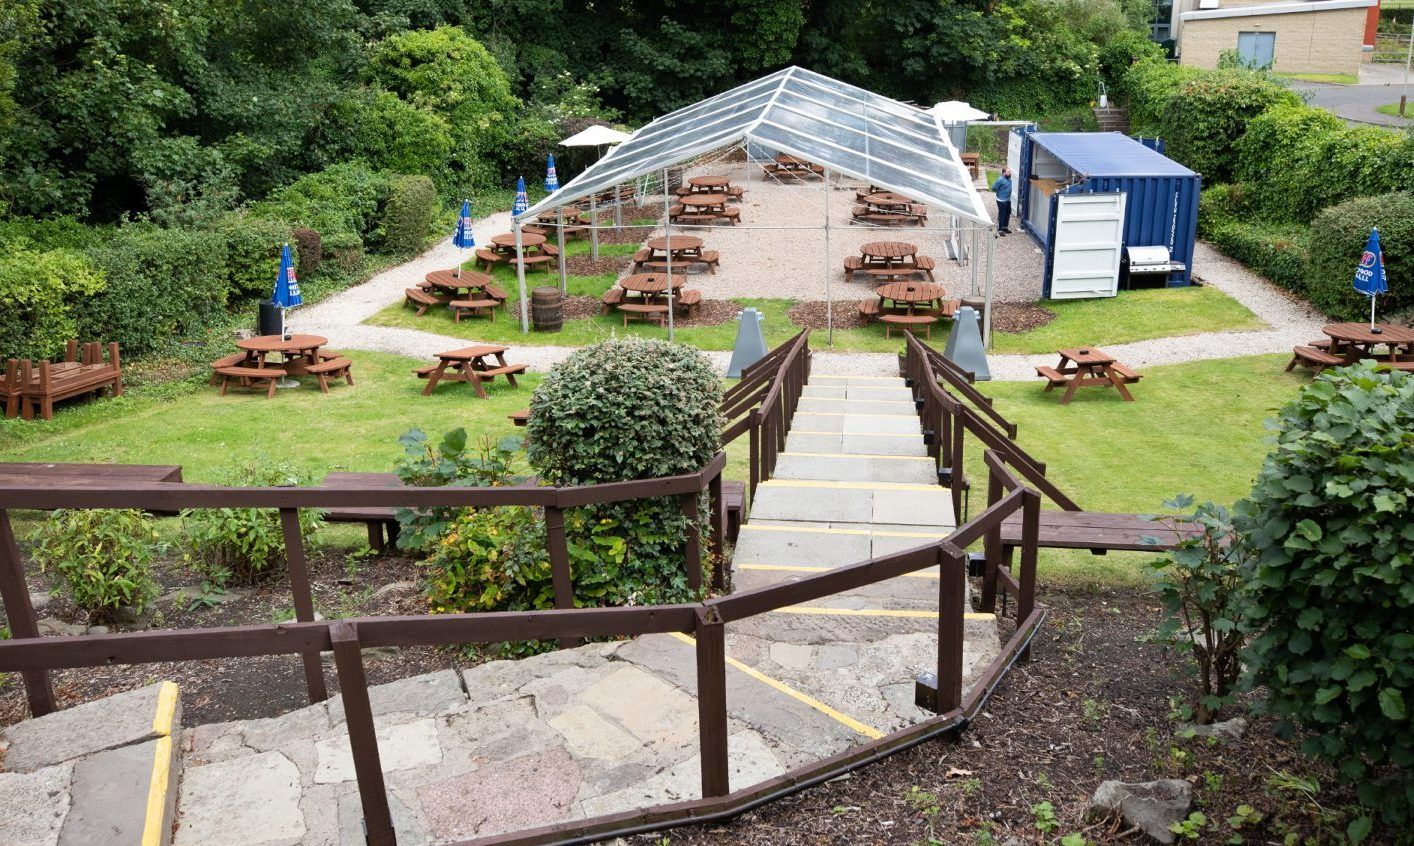 The beer garden at the Kilted Kangaroo, Dundee.